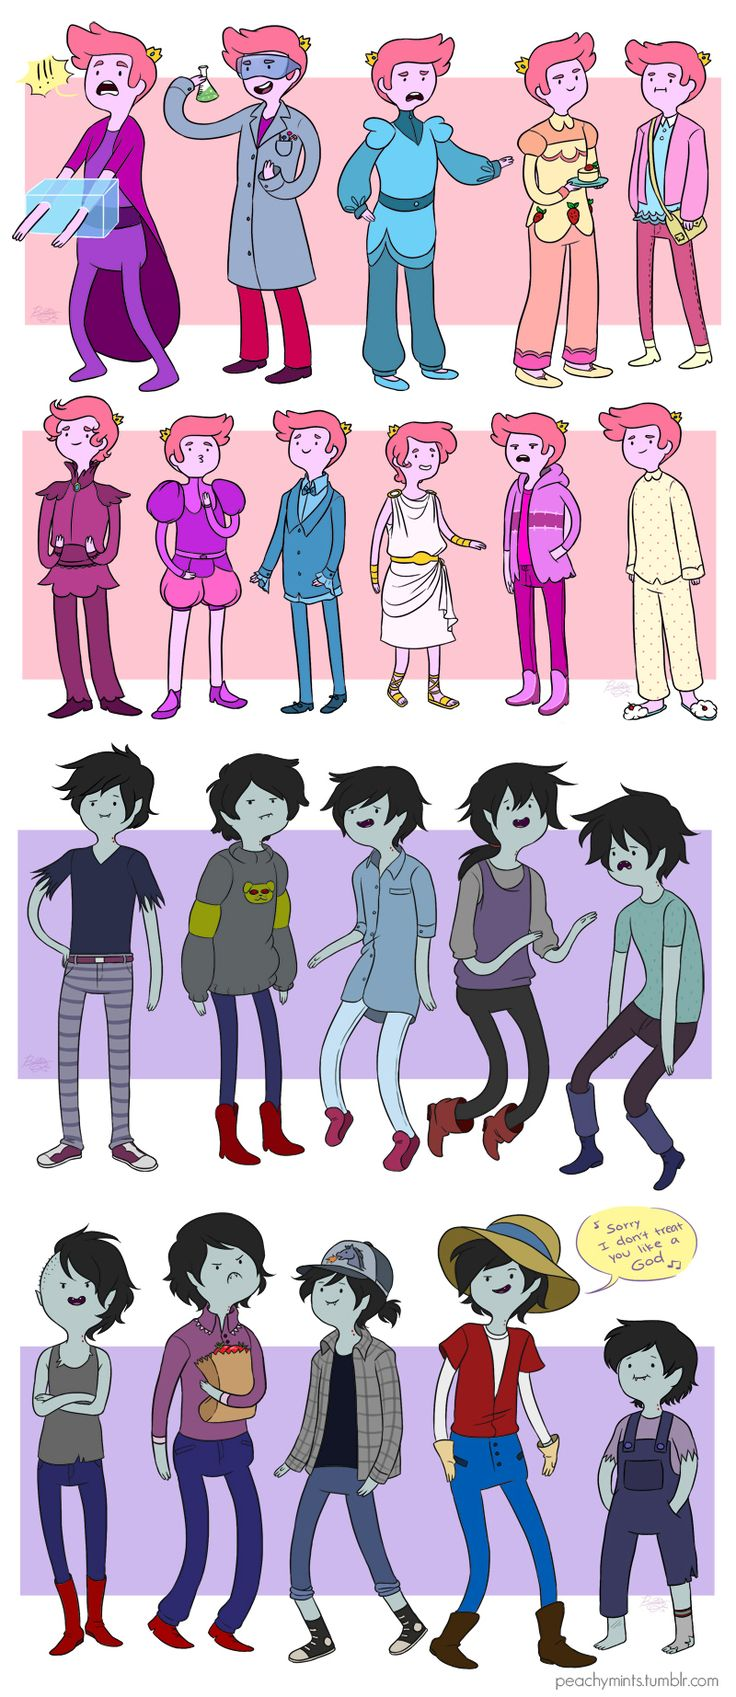 Outfits of Marshall Lee and Gumball